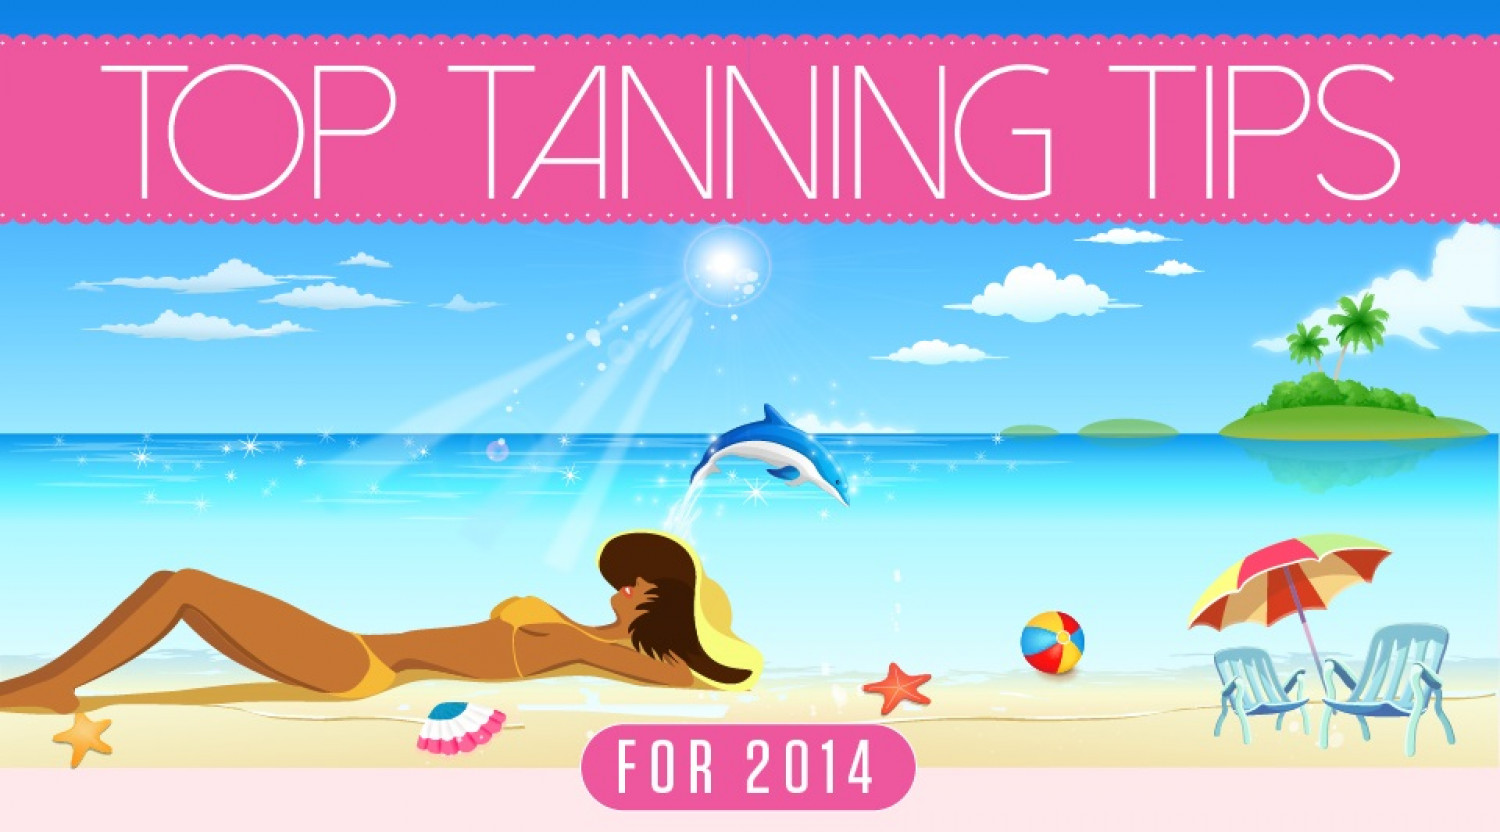 Top Tanning Tips for 2014 Infographic